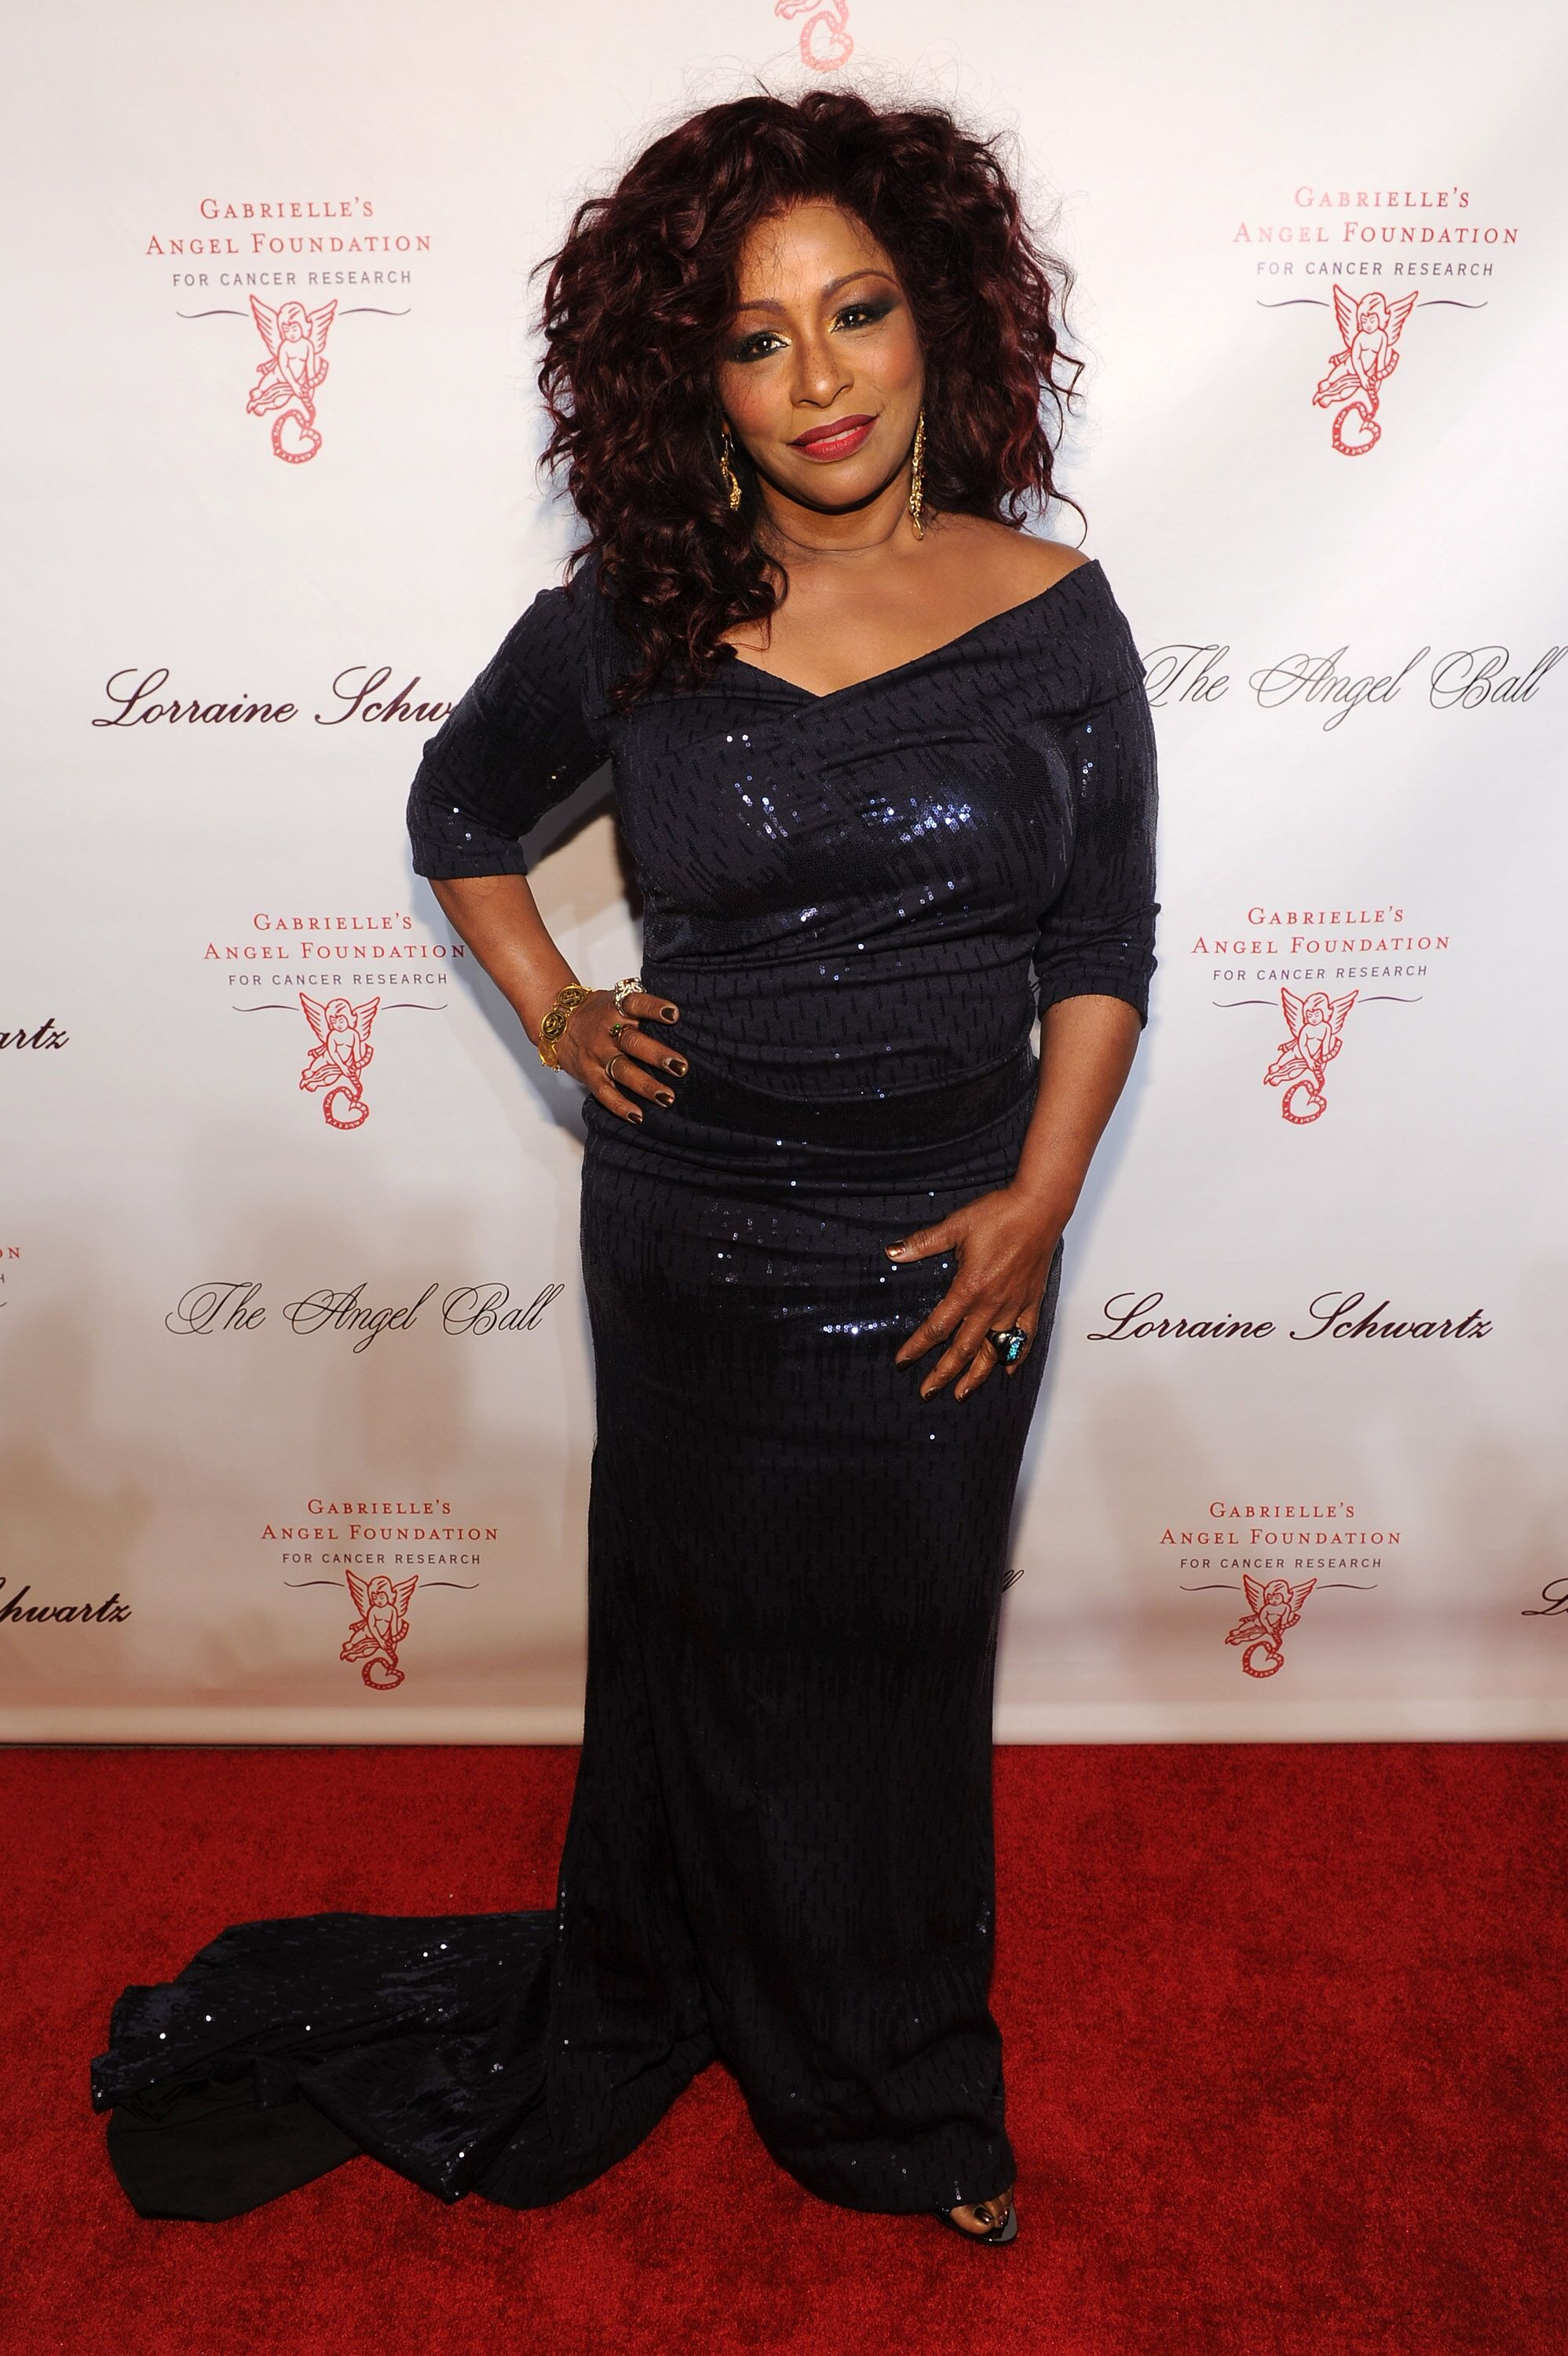 Musician Chaka Khan attends Gabrielle's Angel Foundation's Angel Ball 2013 at Cipriani Wall Street on October 29, 2013.   Source: Getty Images